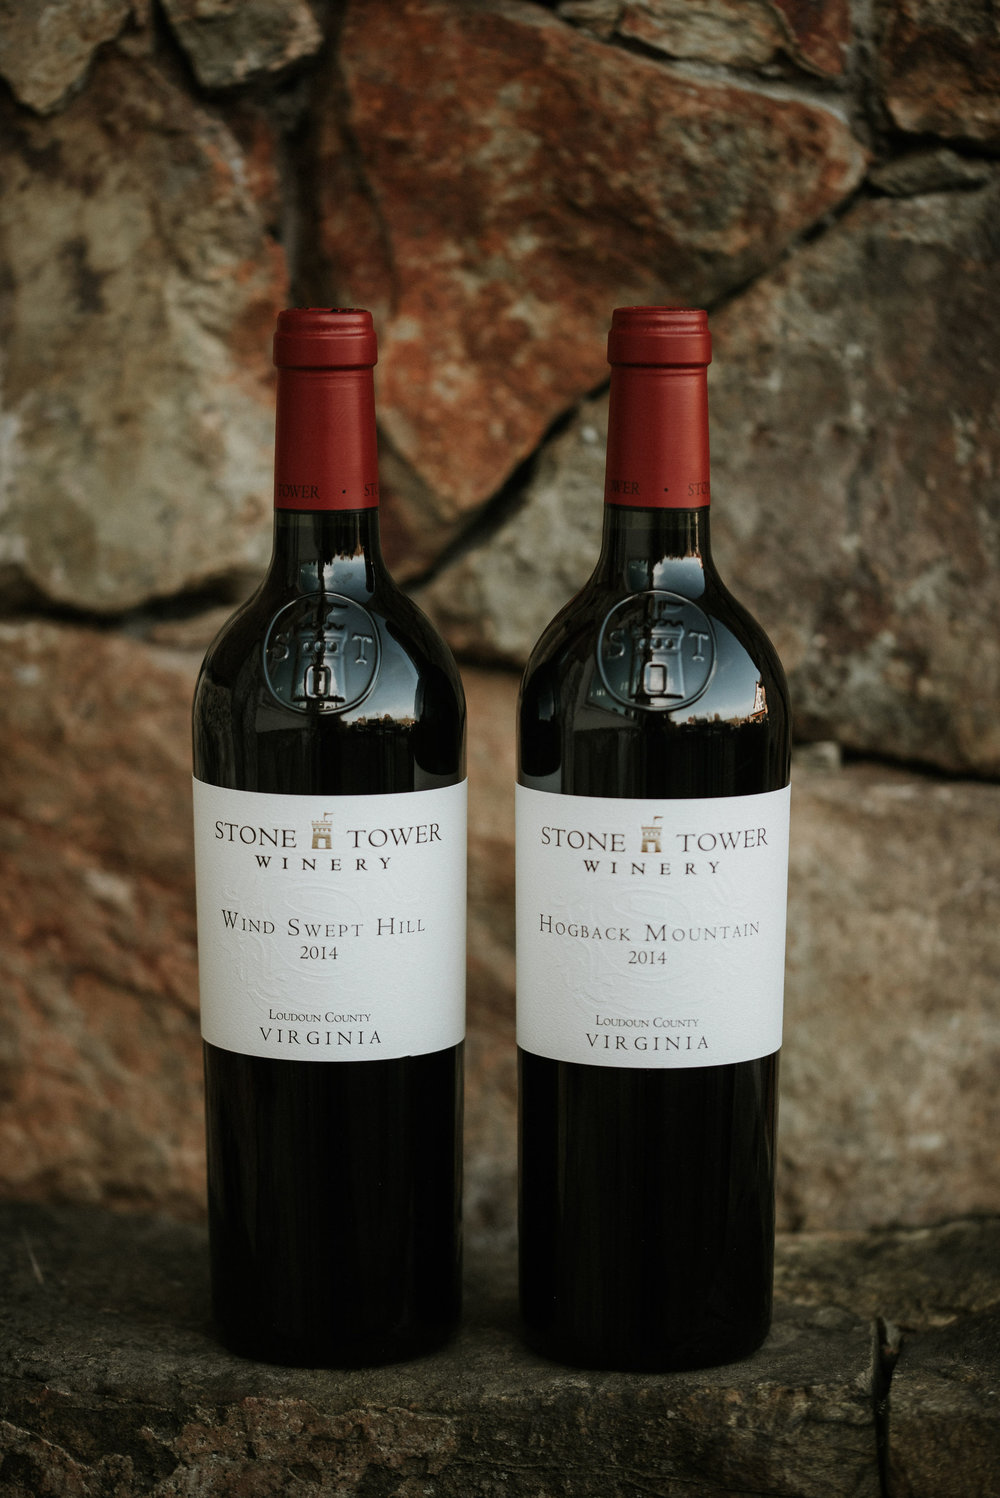 Stone Tower Estate - The Stone Tower Estate label presents wines that were grown, produced, and bottled exclusively from our vineyards atop Hogback Mountain. These wines are a truly authentic expression of our terroir and will exclusively feature the finest our estate has to offer.